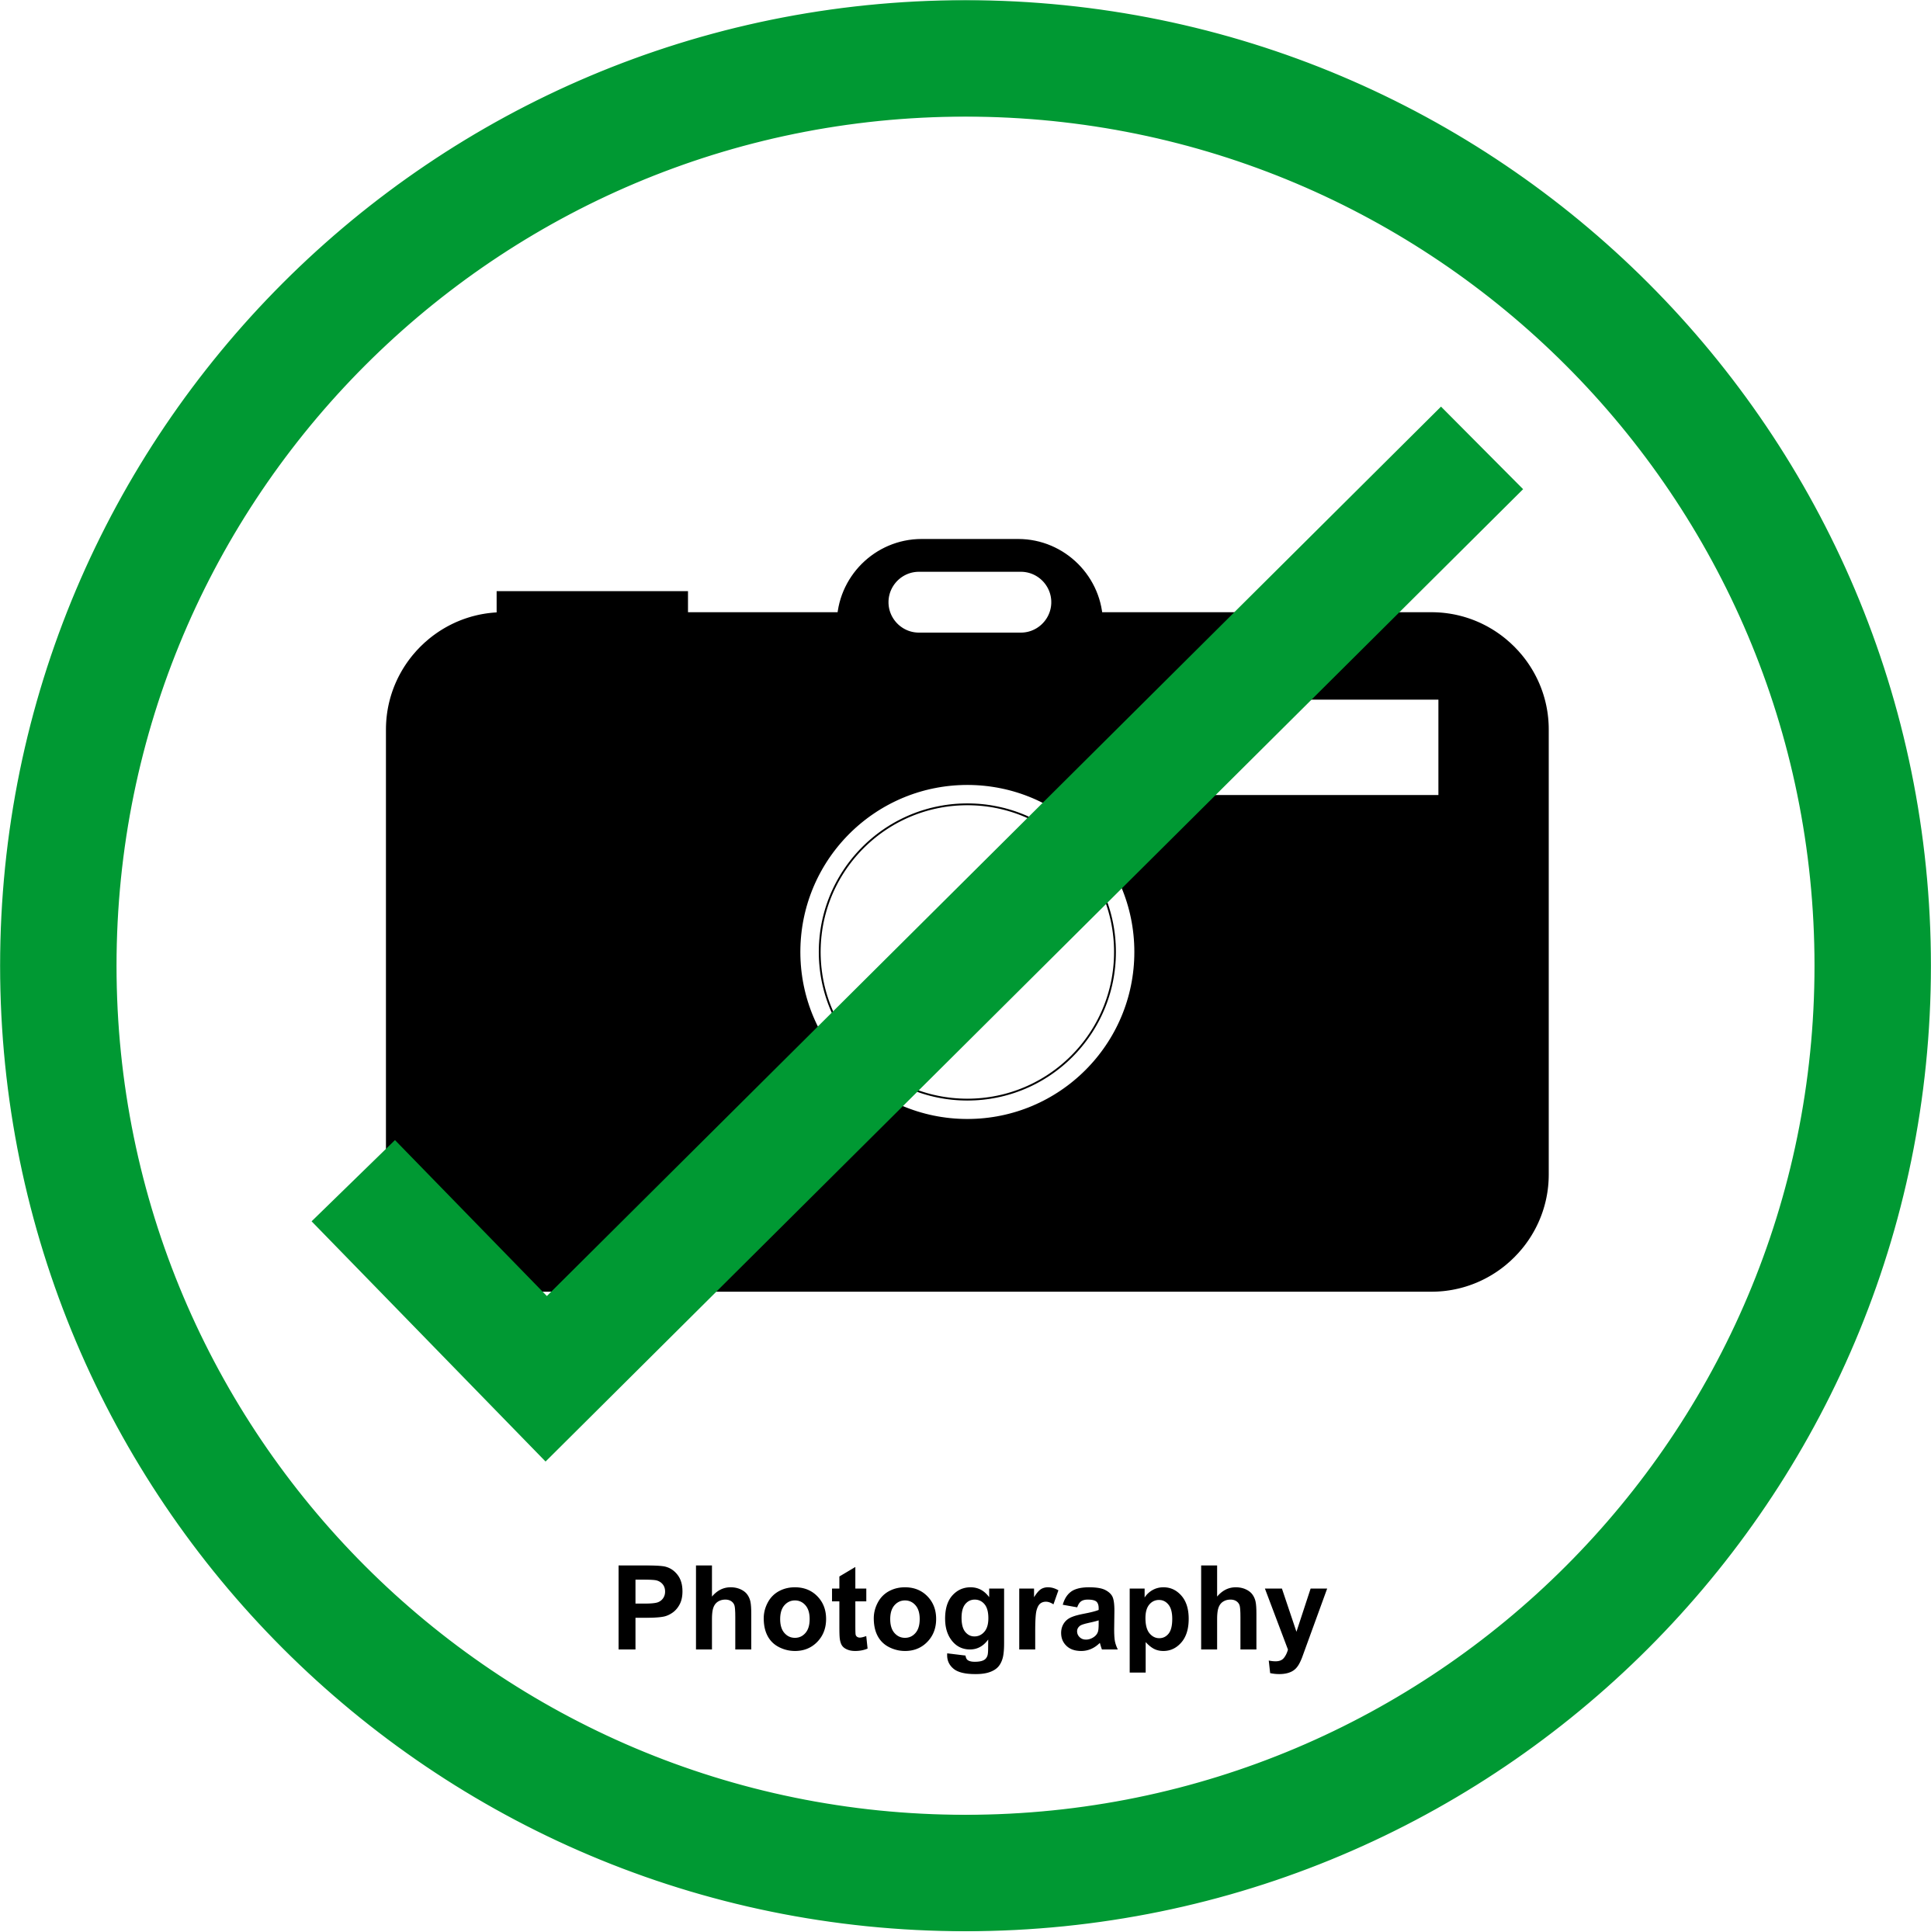 Permission Sign - Photography allowed